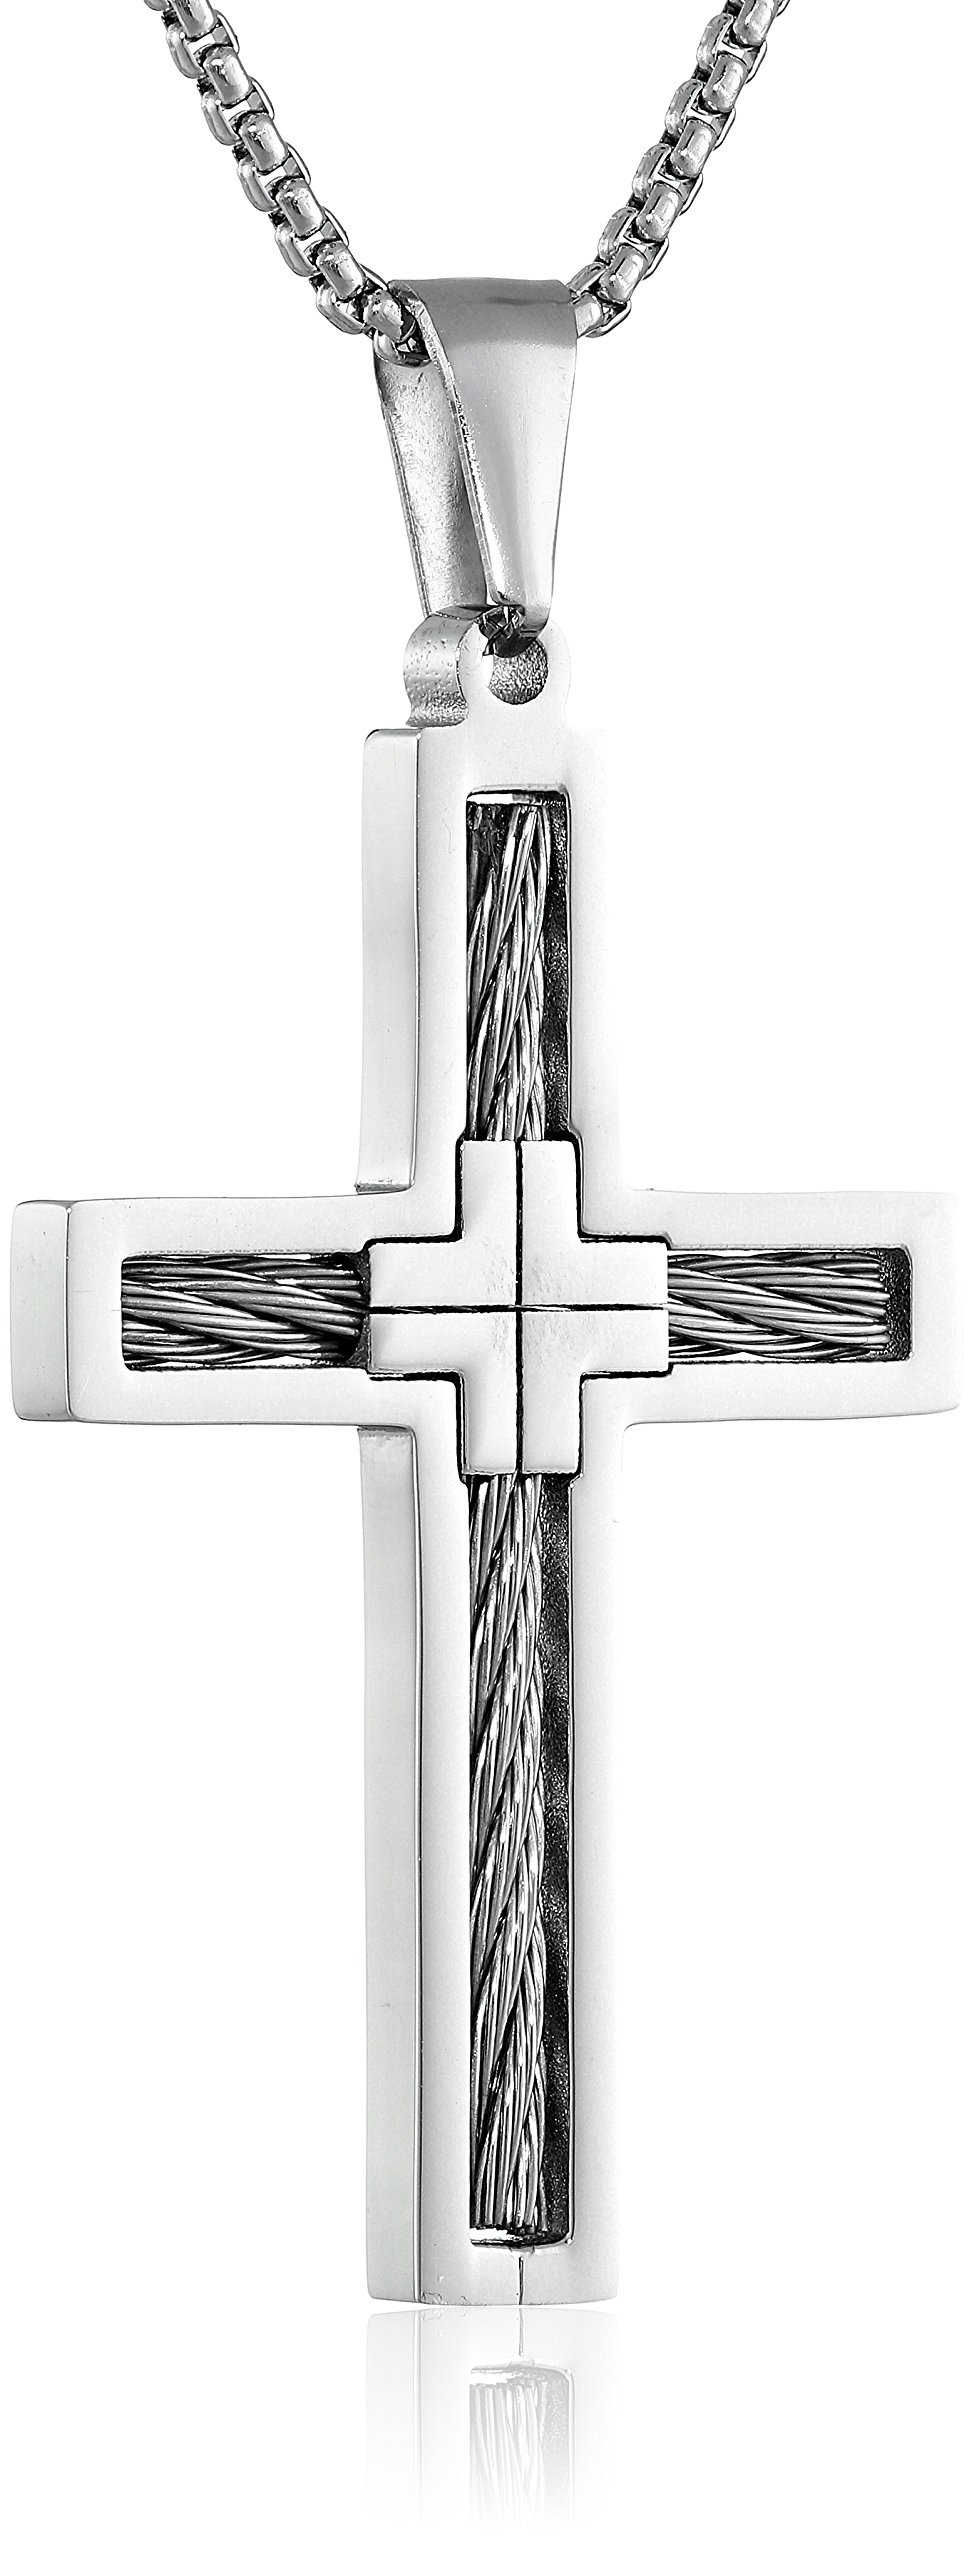 Men s stainless steel cable cross pendant necklace